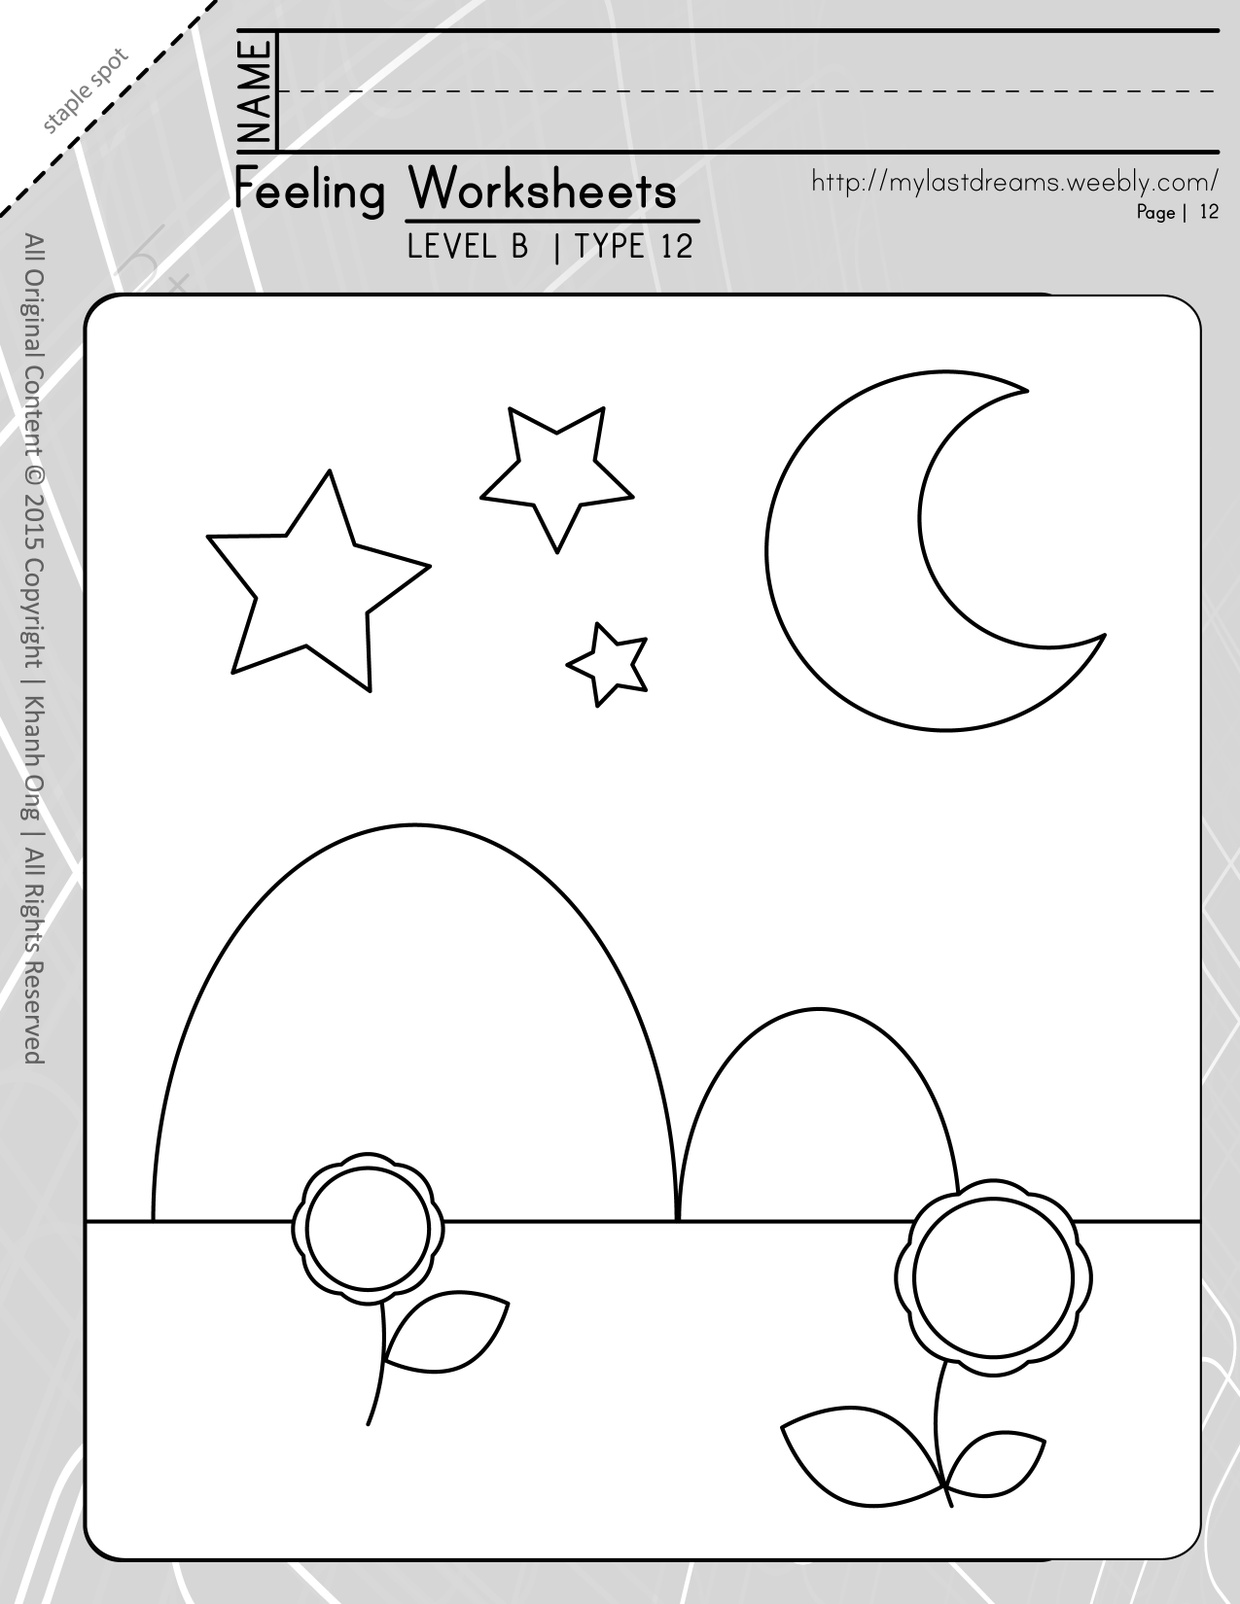 MLD - Basic Feeling Worksheets - Part 2 - Letter Sized